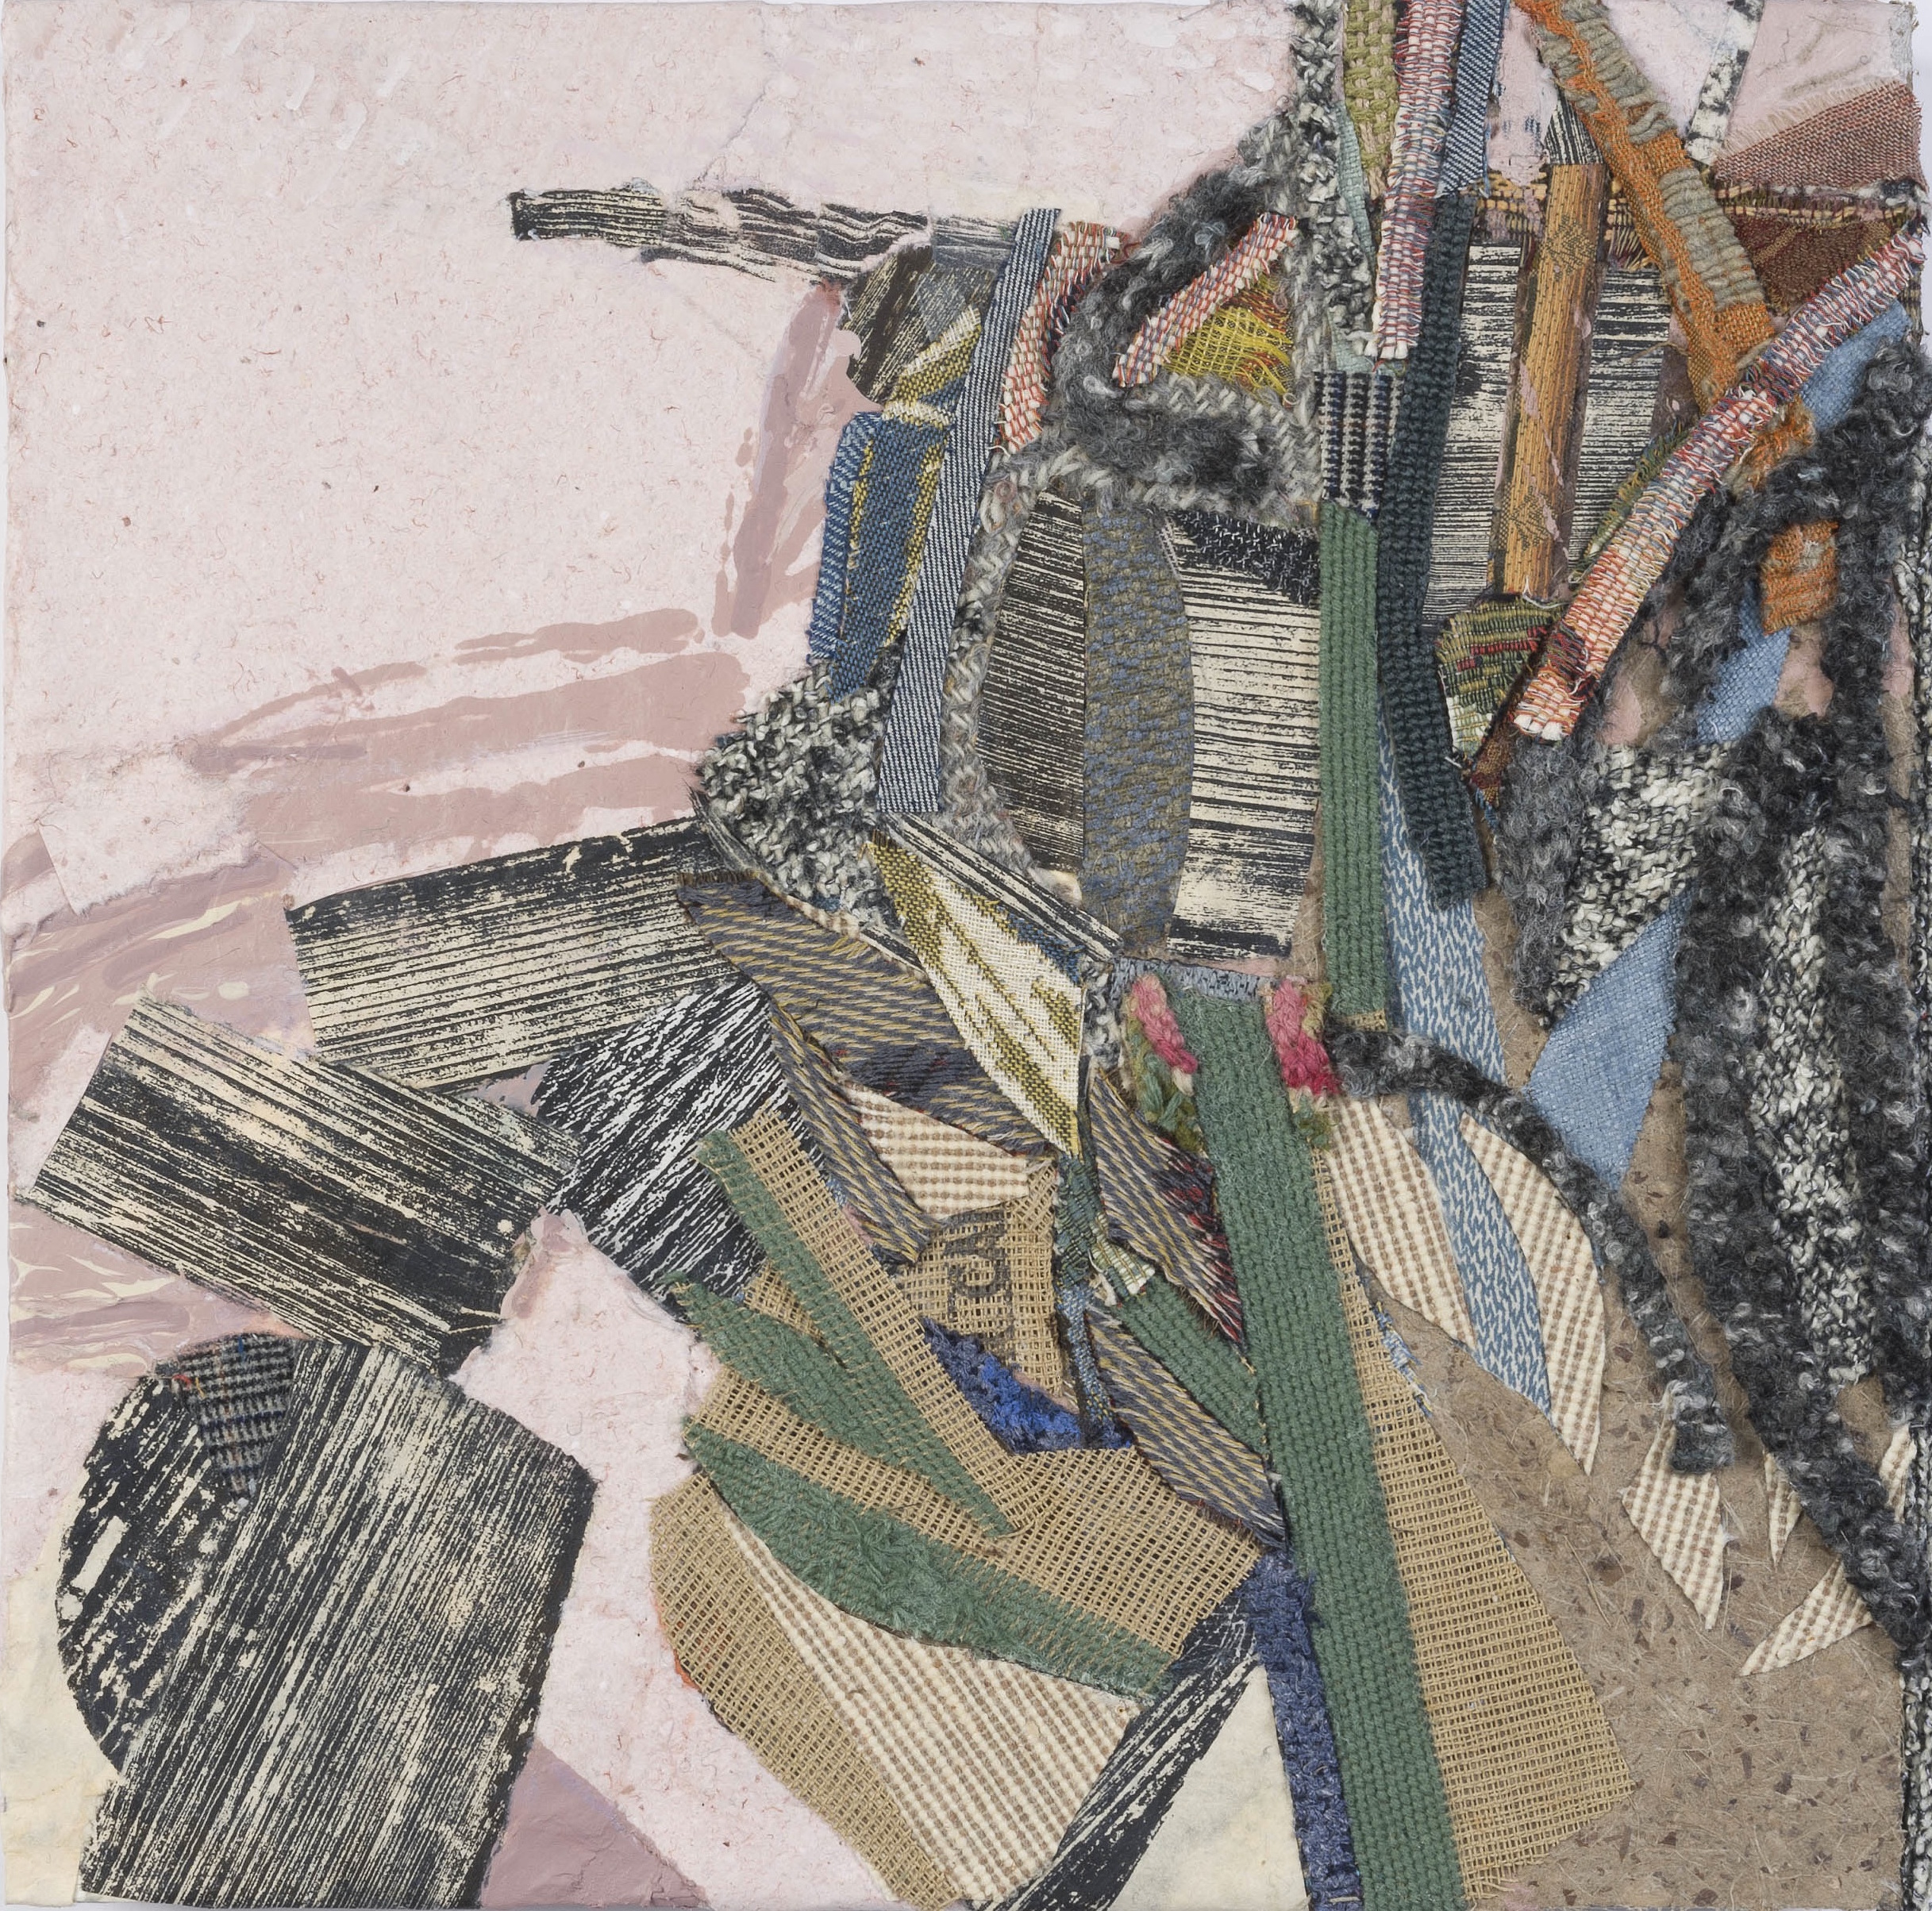 Vista and Strata III , 2012, mixed media on panel, 16 1/8 x 16 1/2 inches